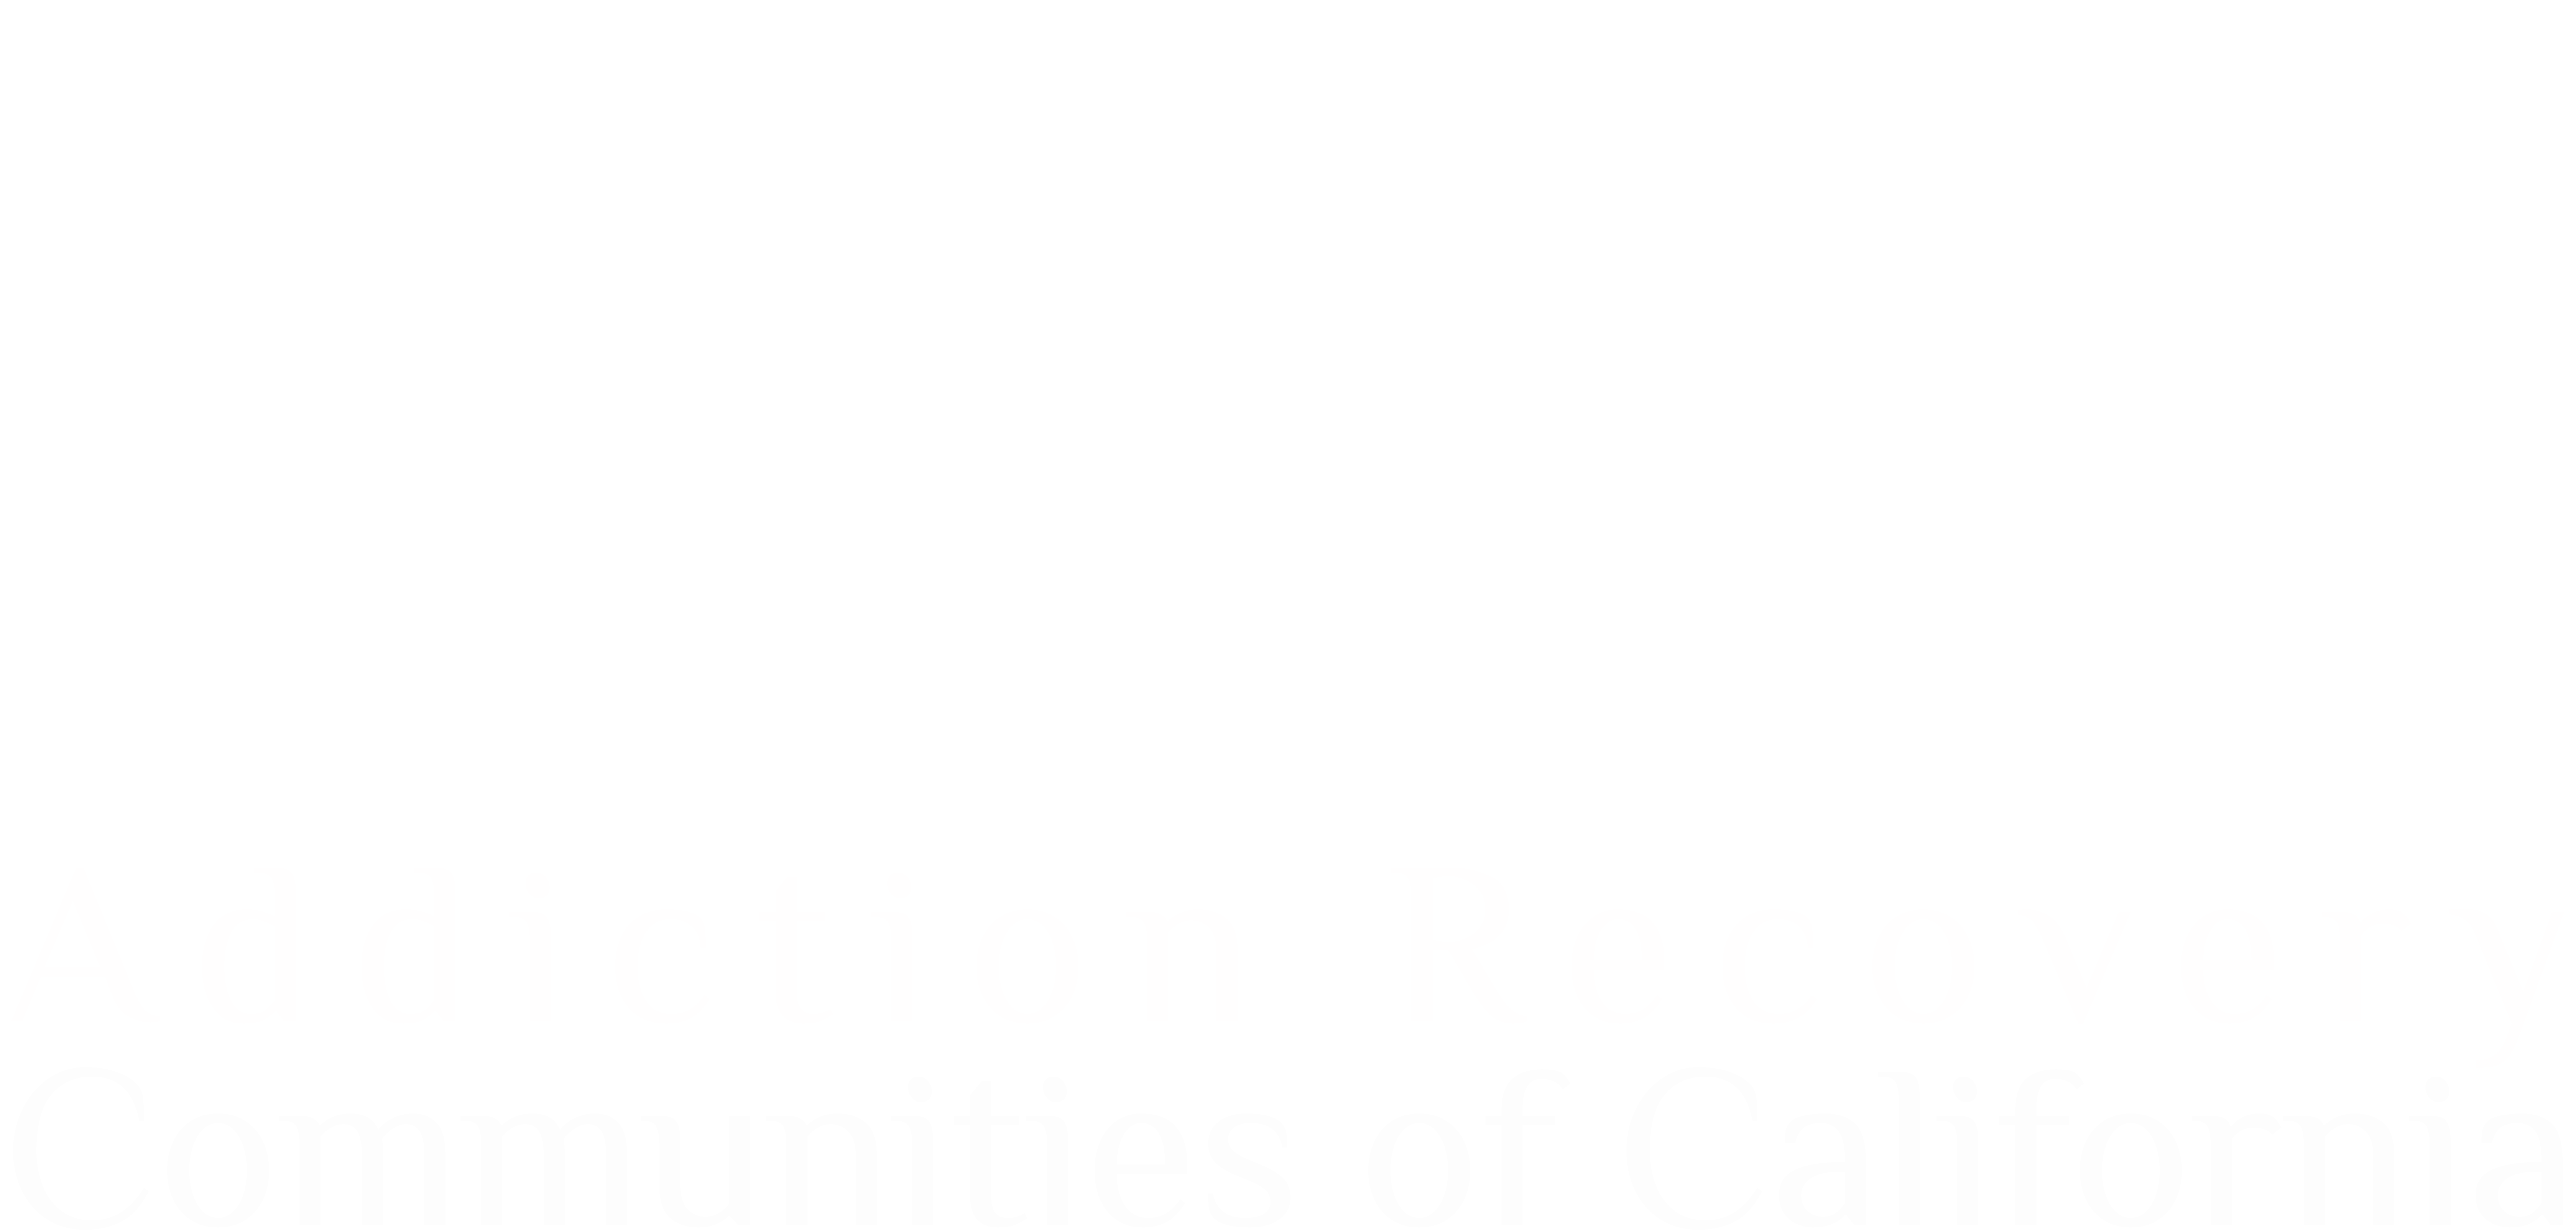 Addiction Recovery Communities of California